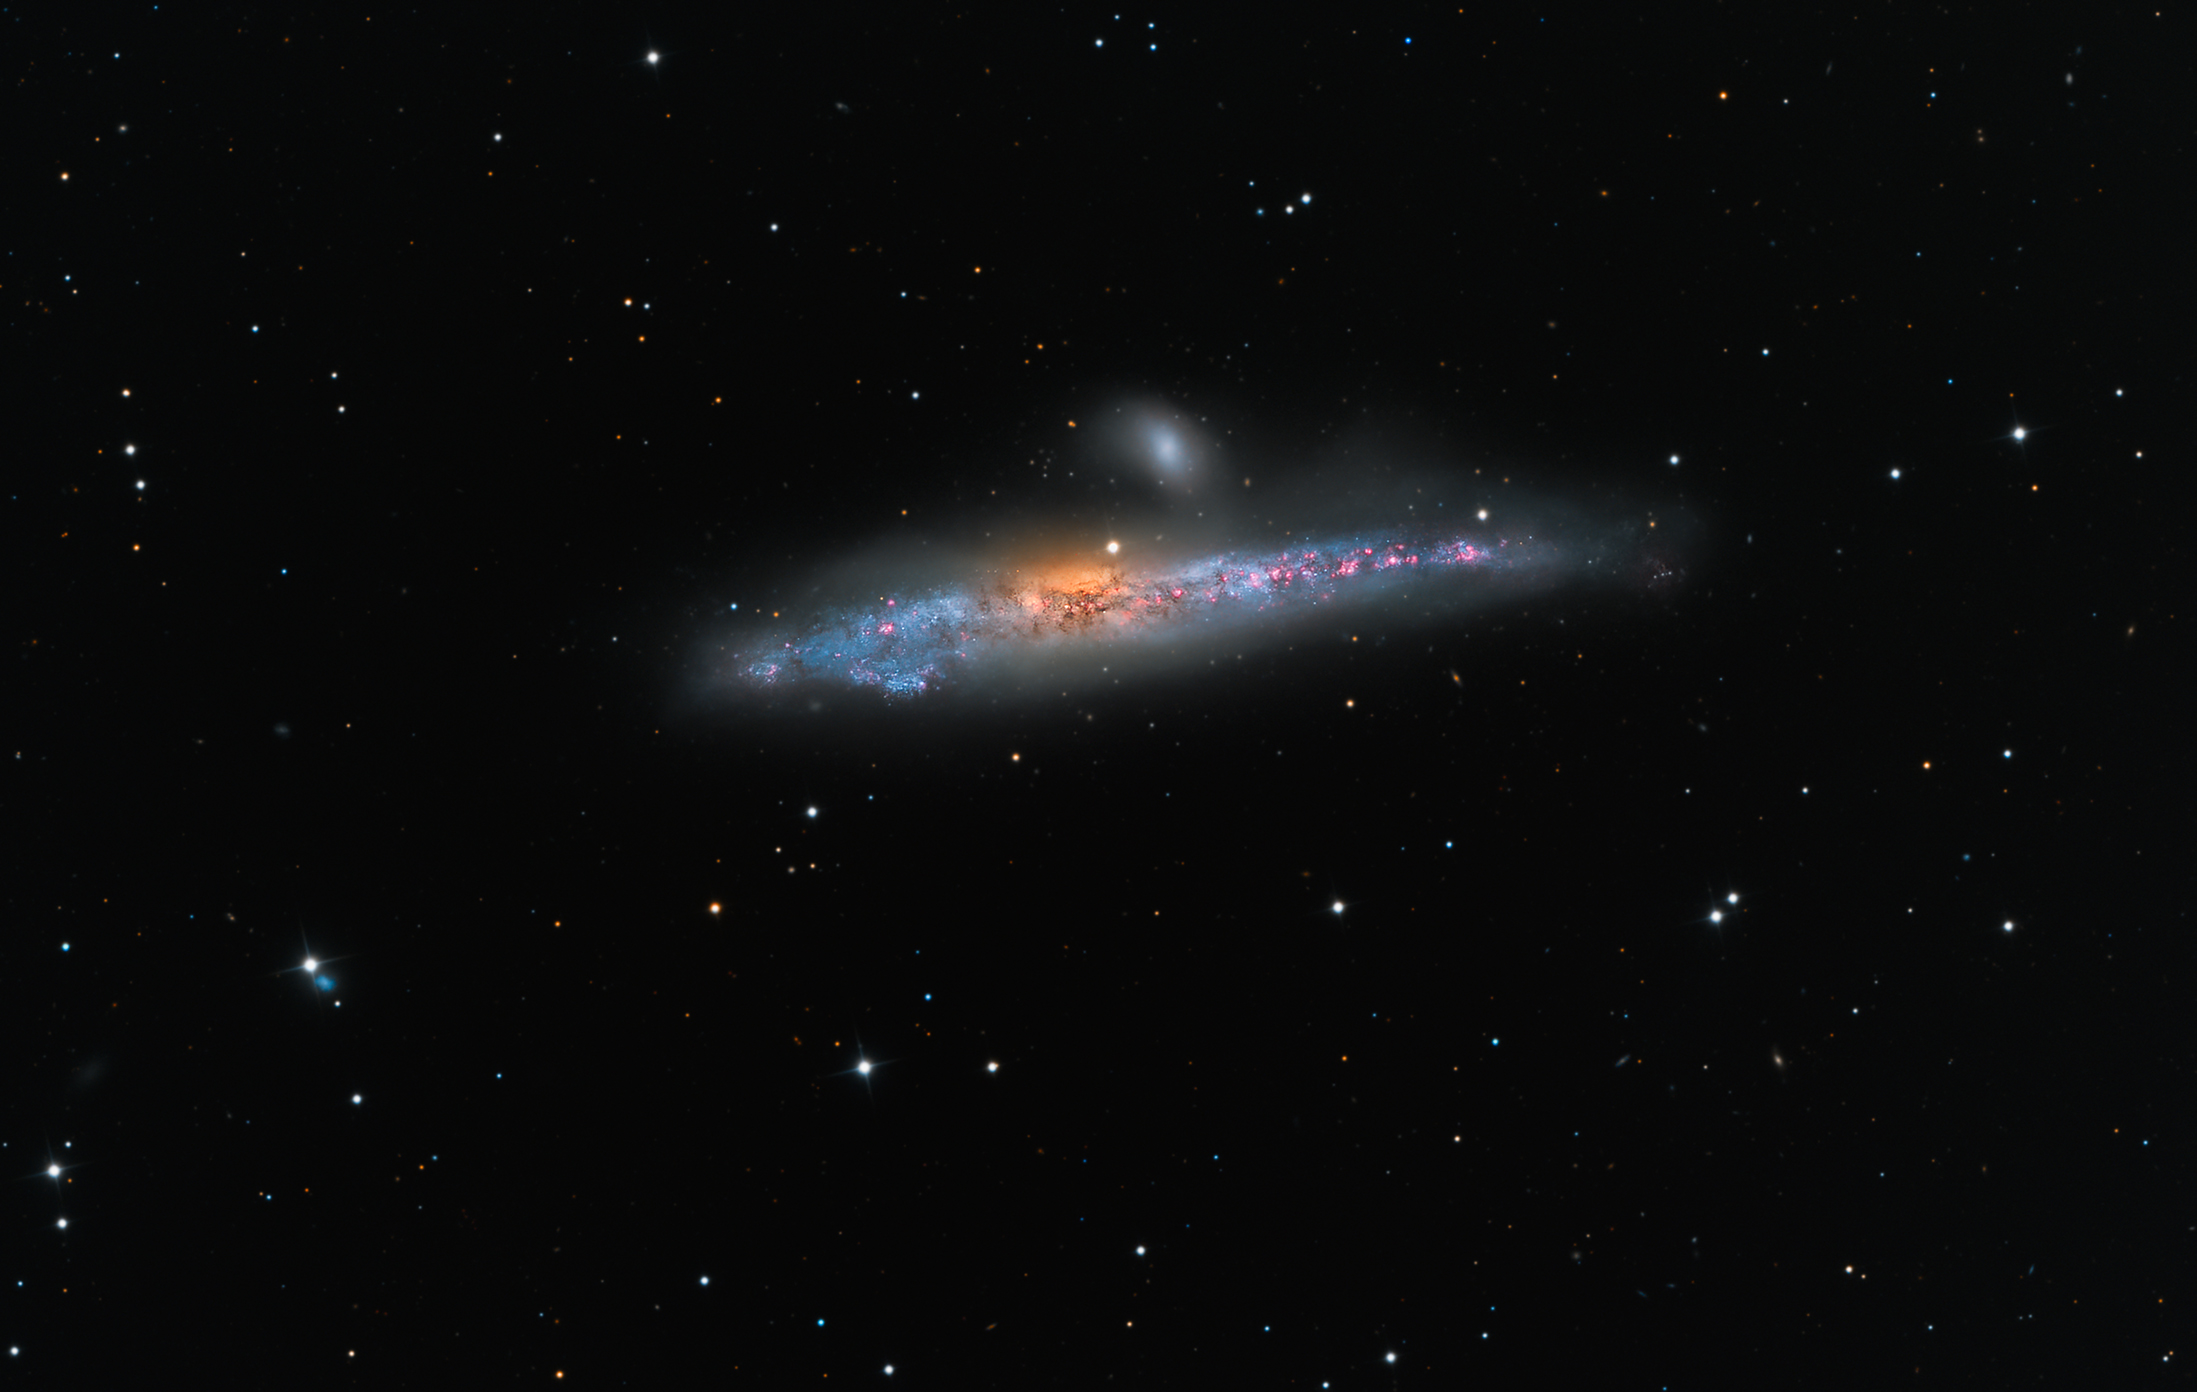 2016 June 3 - NGC 4631: The Whale Galaxy